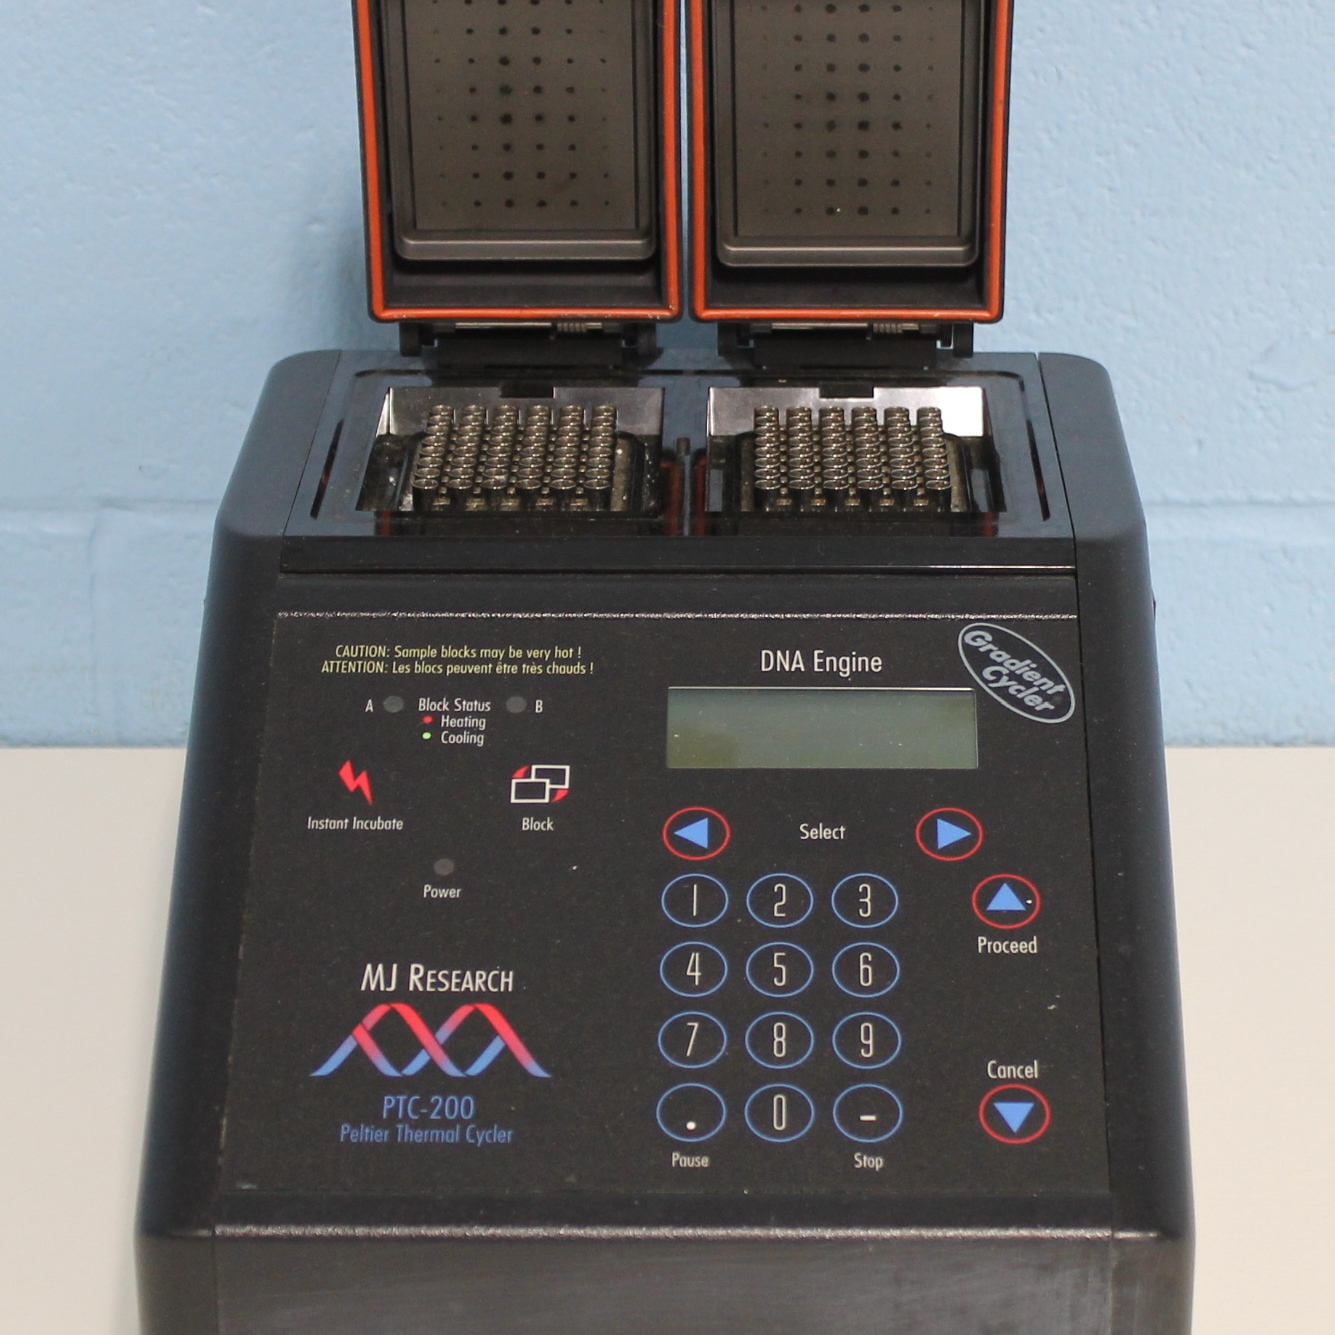 MJ Research PTC-200 Gradient Peltier Thermal Cycler with Dual 48 Well Image